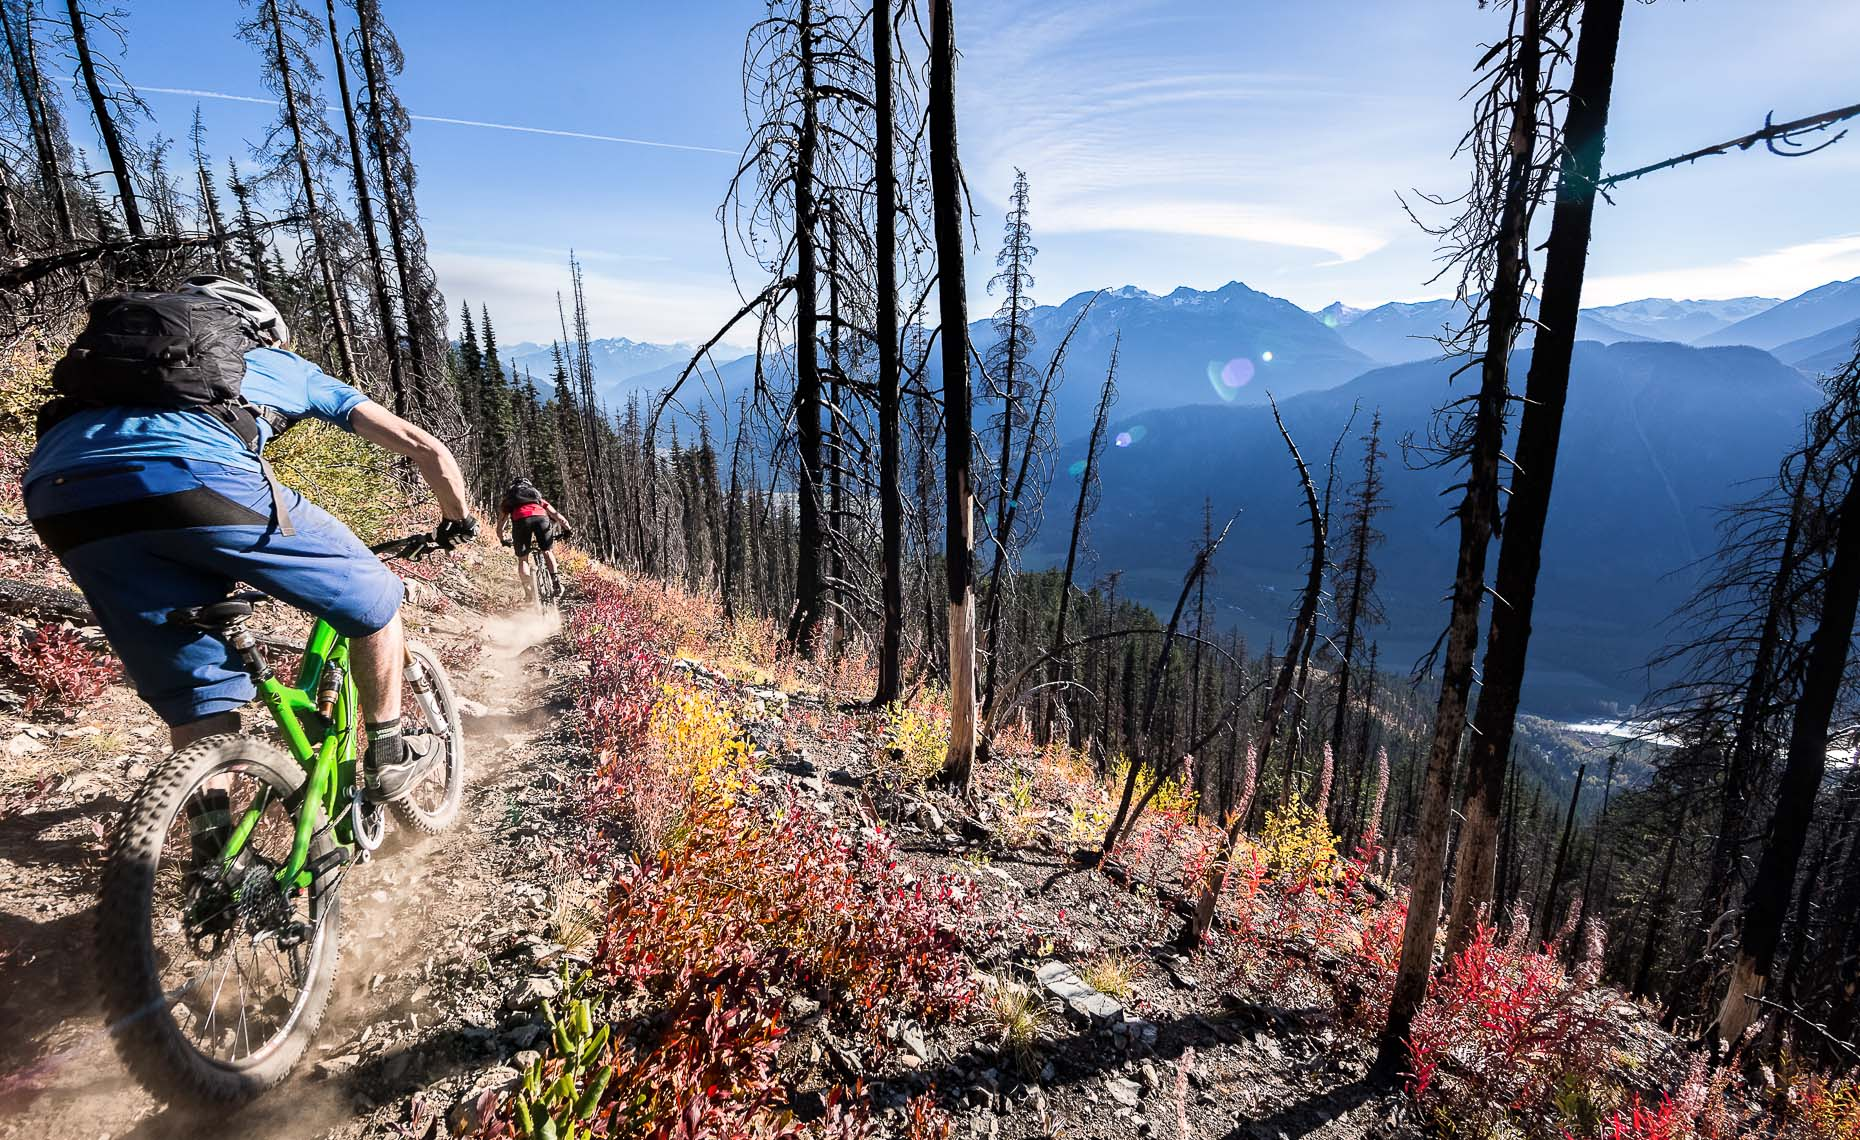 Burned trees and mountain landscape with mountain bike athlete.